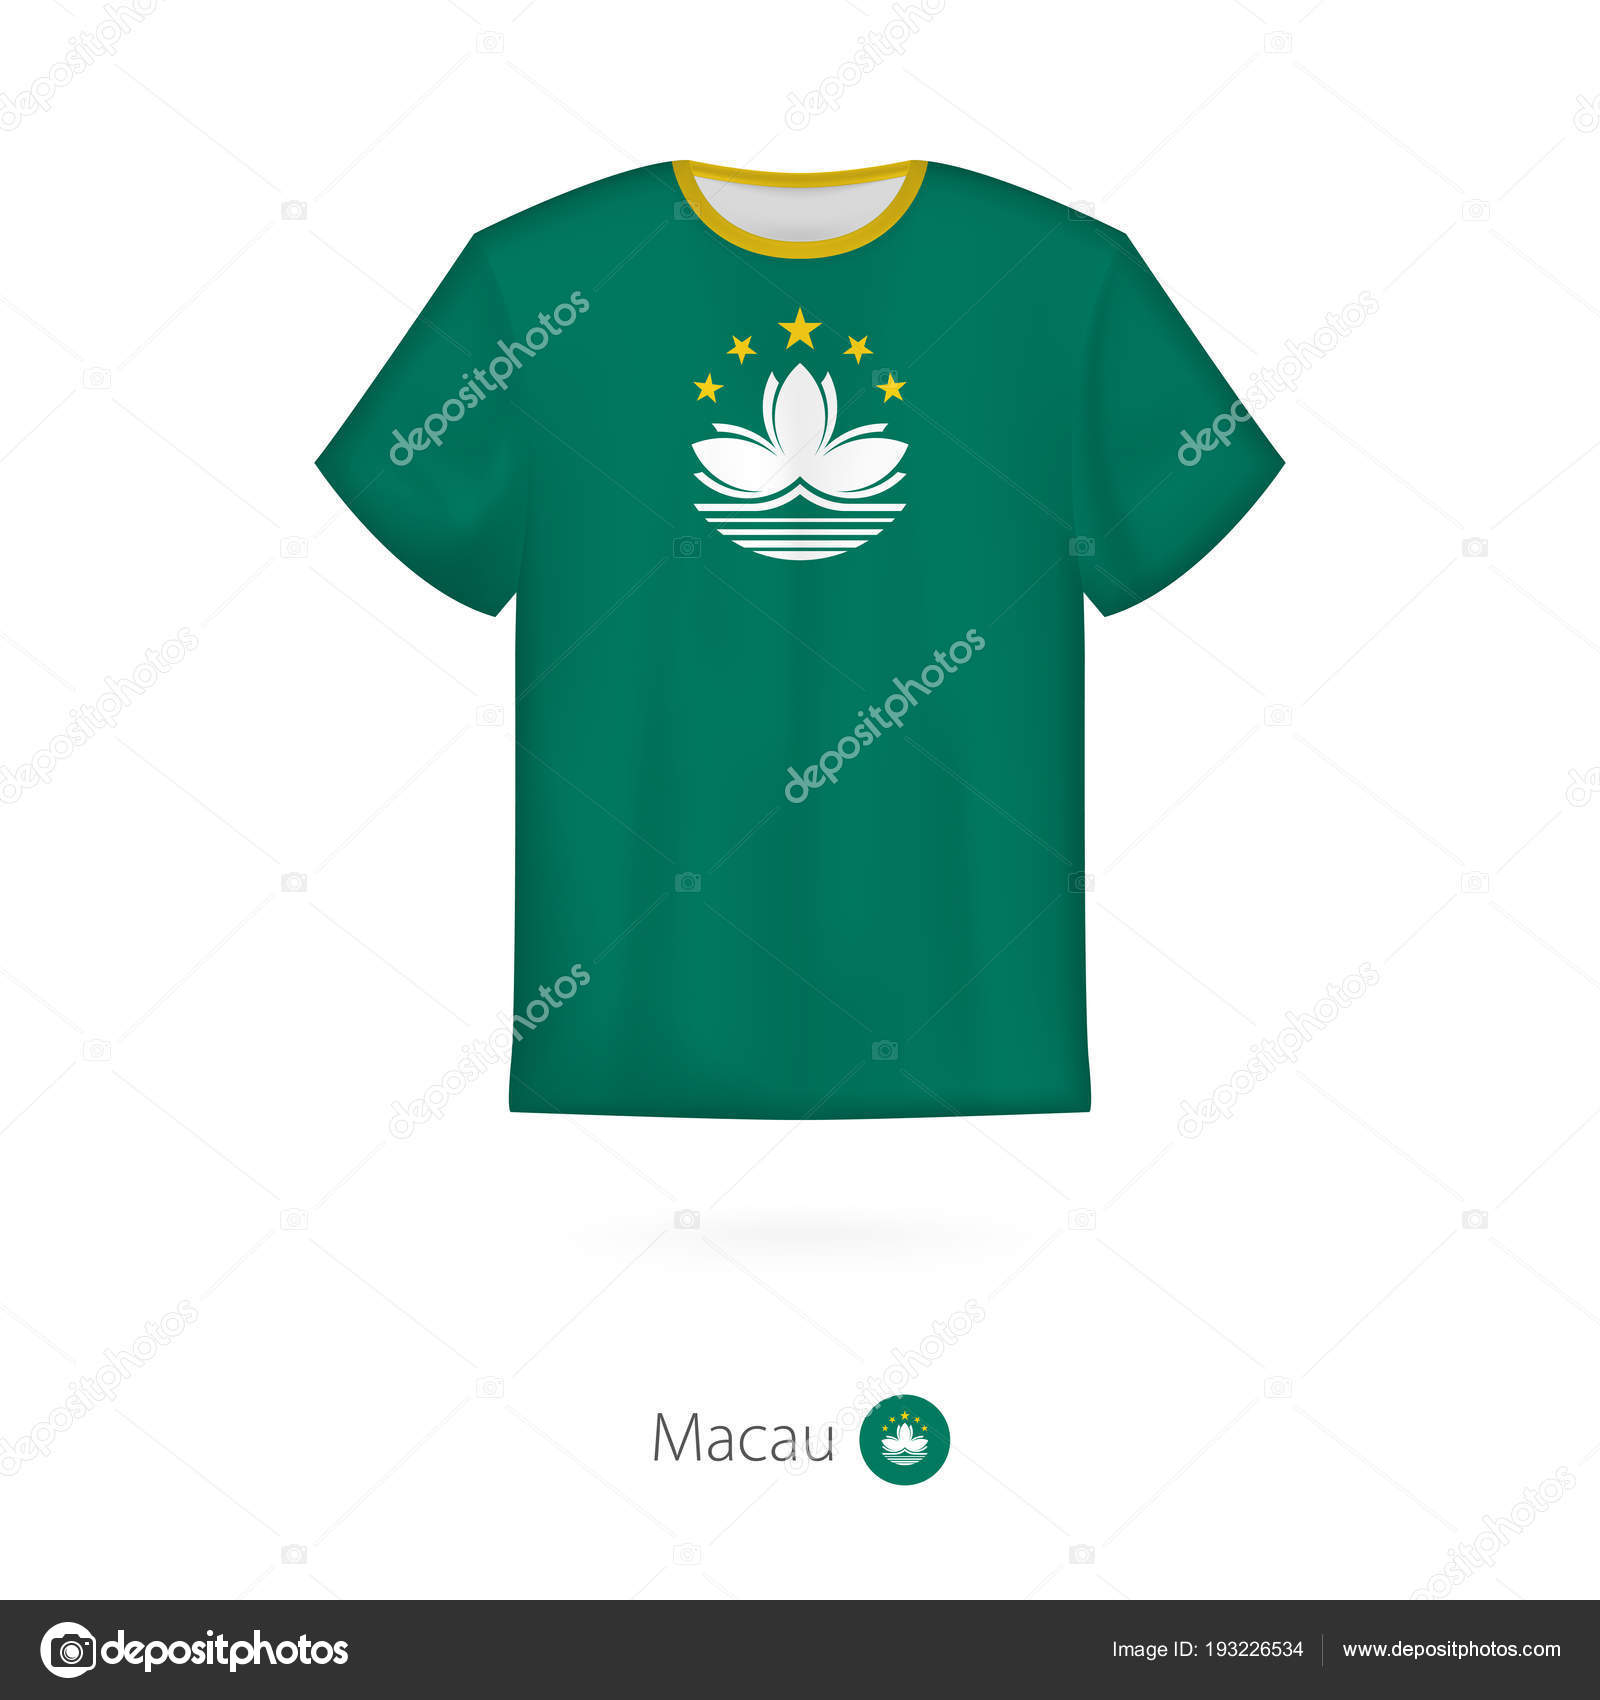 T shirt design with flag of macau stock vector boldg for Stock t shirt designs